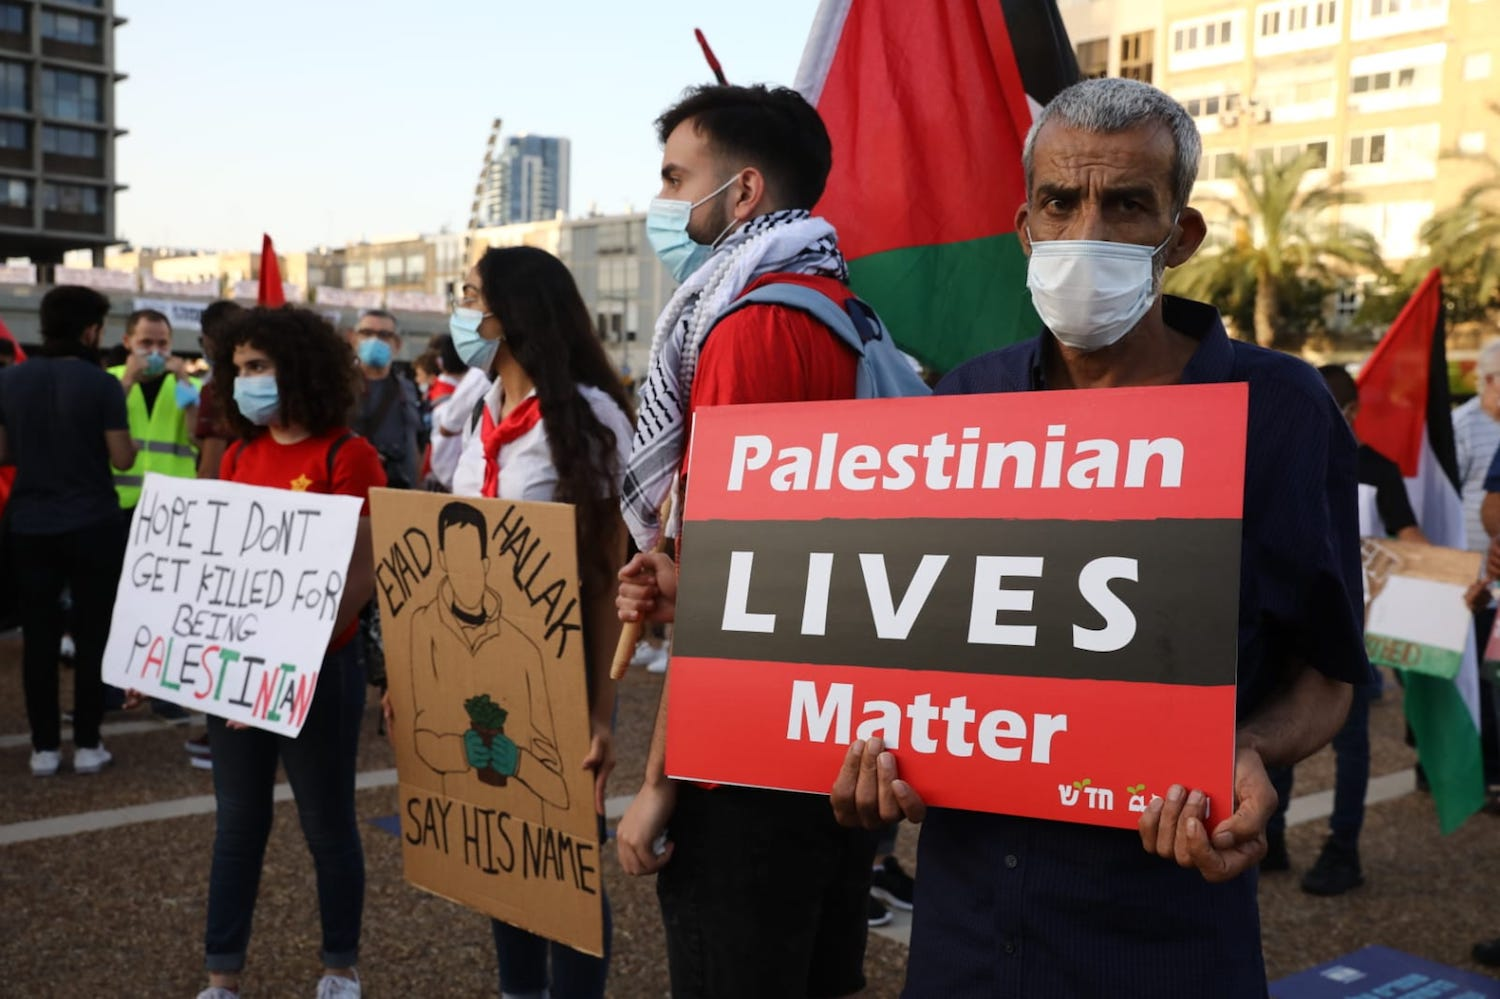 Israeli and Palestinian protesters take part in a demonstration in Rabin Square against the government's annexation plan, Tel Aviv, June 6, 2020. (Oren Ziv)